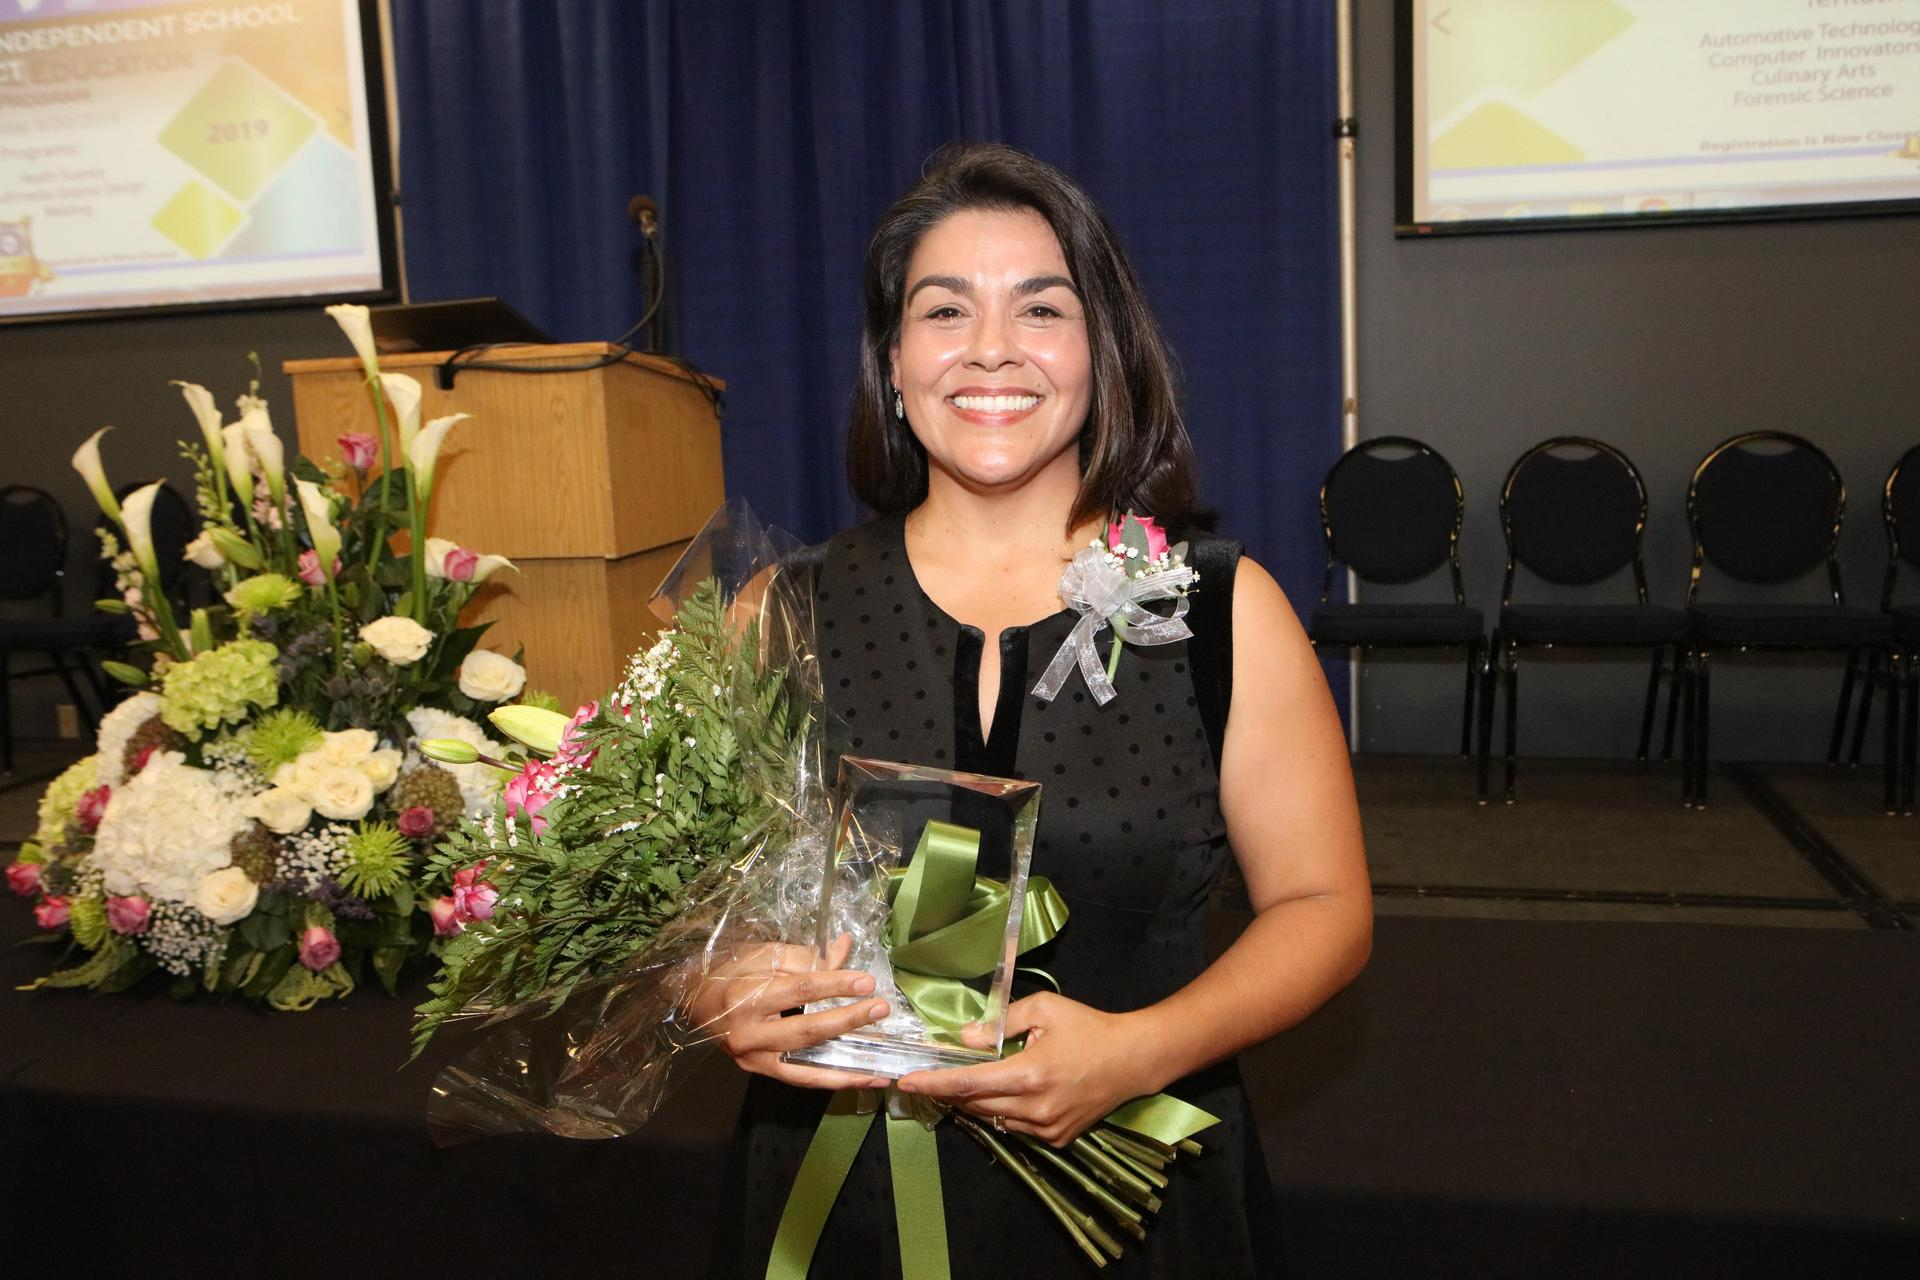 2019-2020 District Secondary Teacher of the Year, Delia Perez